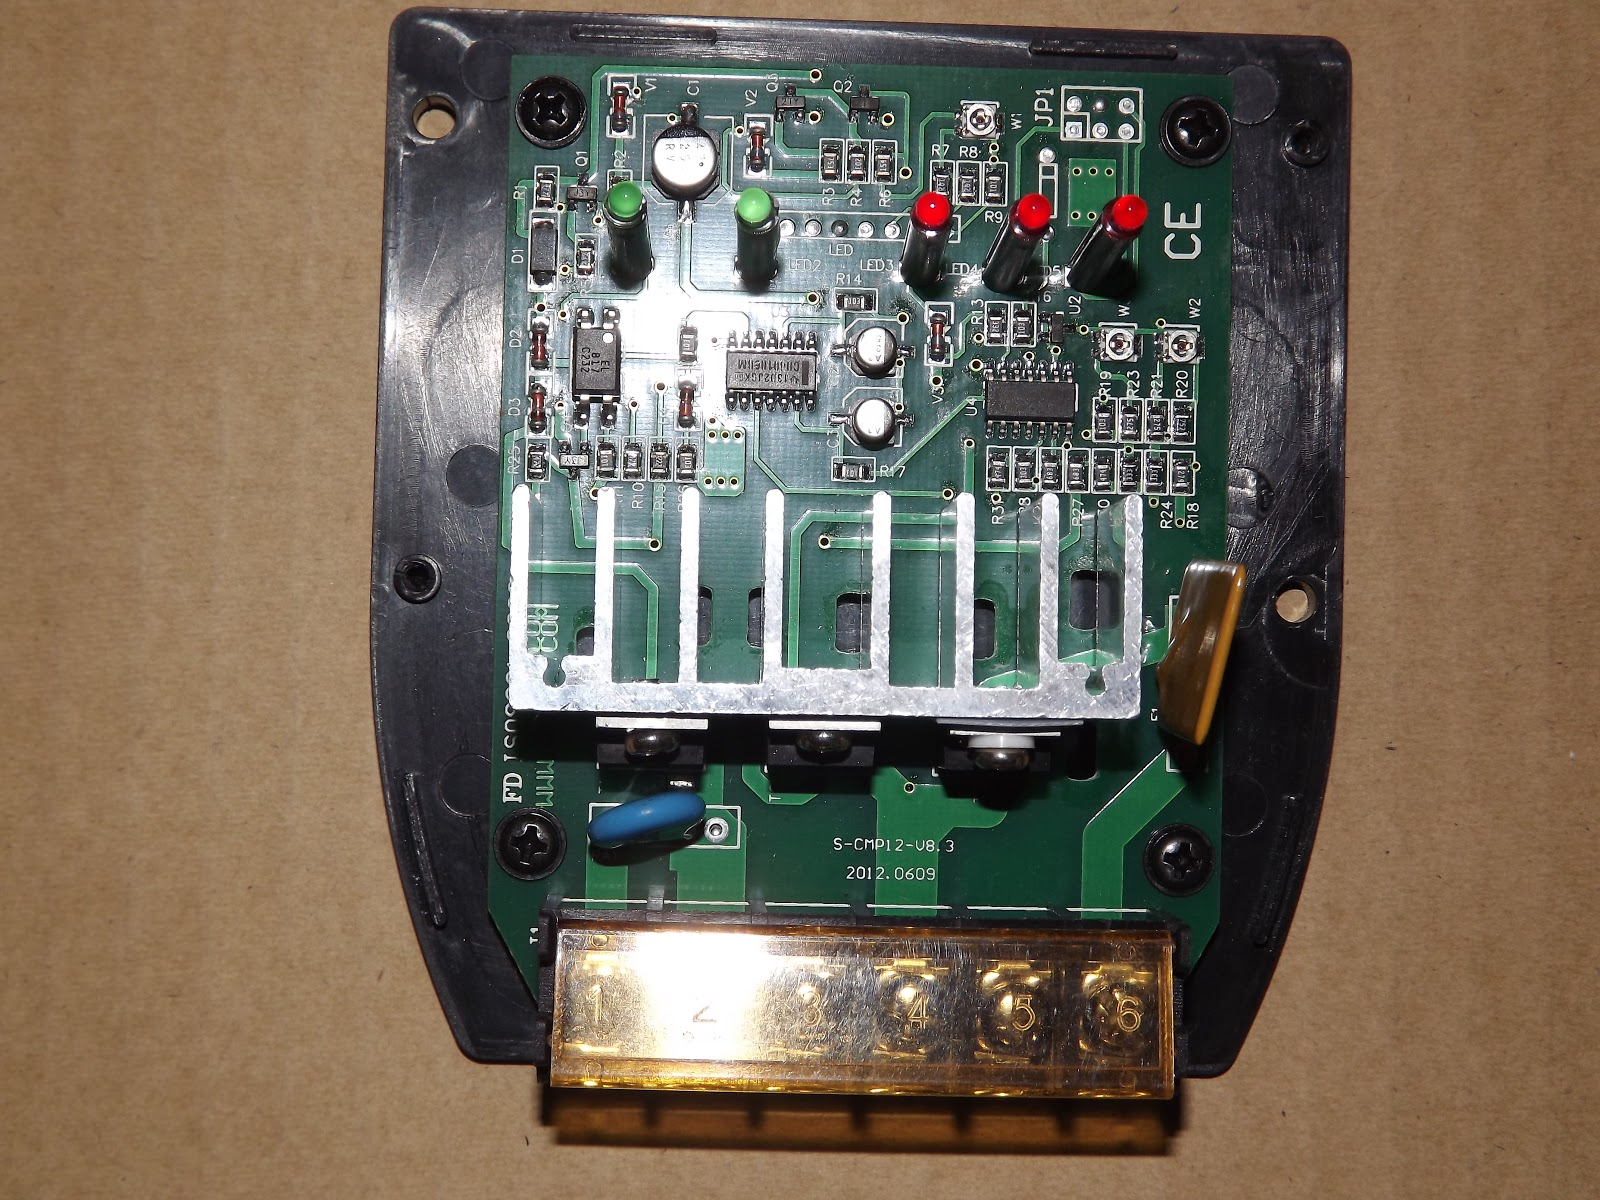 pwm solar charge controller circuit diagram modular origami battery charging topology of charger electrical juta cpm12